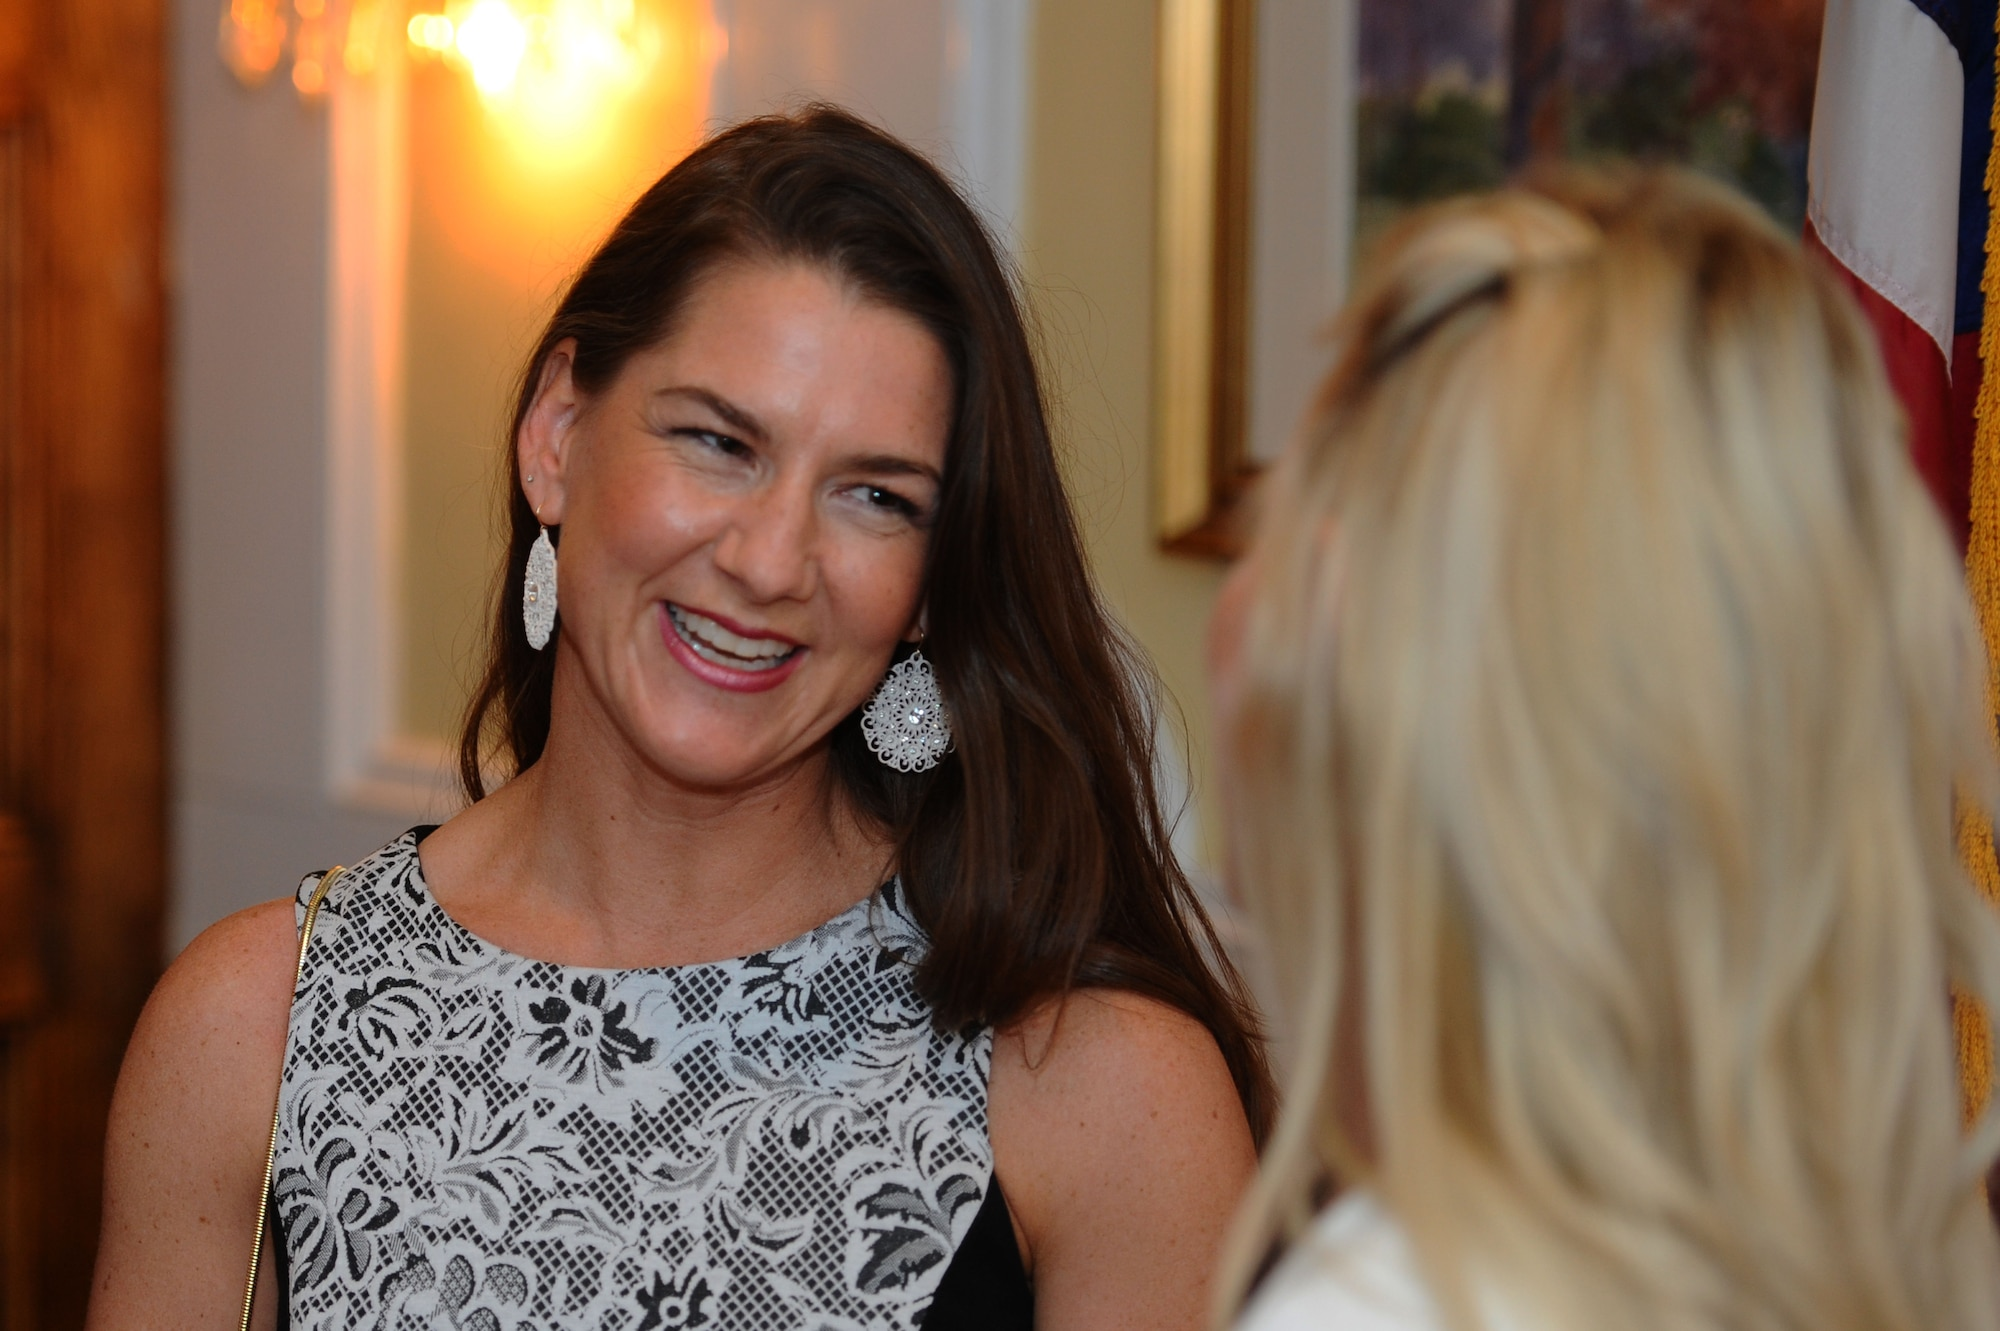 Michelle Aikman, the 2016 Air Force Spouse of the Year, speaks with a fellow spouse of the year nominee during the Military Spouse of the Year award luncheon May 5, 2016, at Fort Myer in Arlington, Va. Aikman aims to be a voice for all spouses navigating challenges in their lives. (U.S. Air Force photo/Tech. Sgt. Bryan Franks)